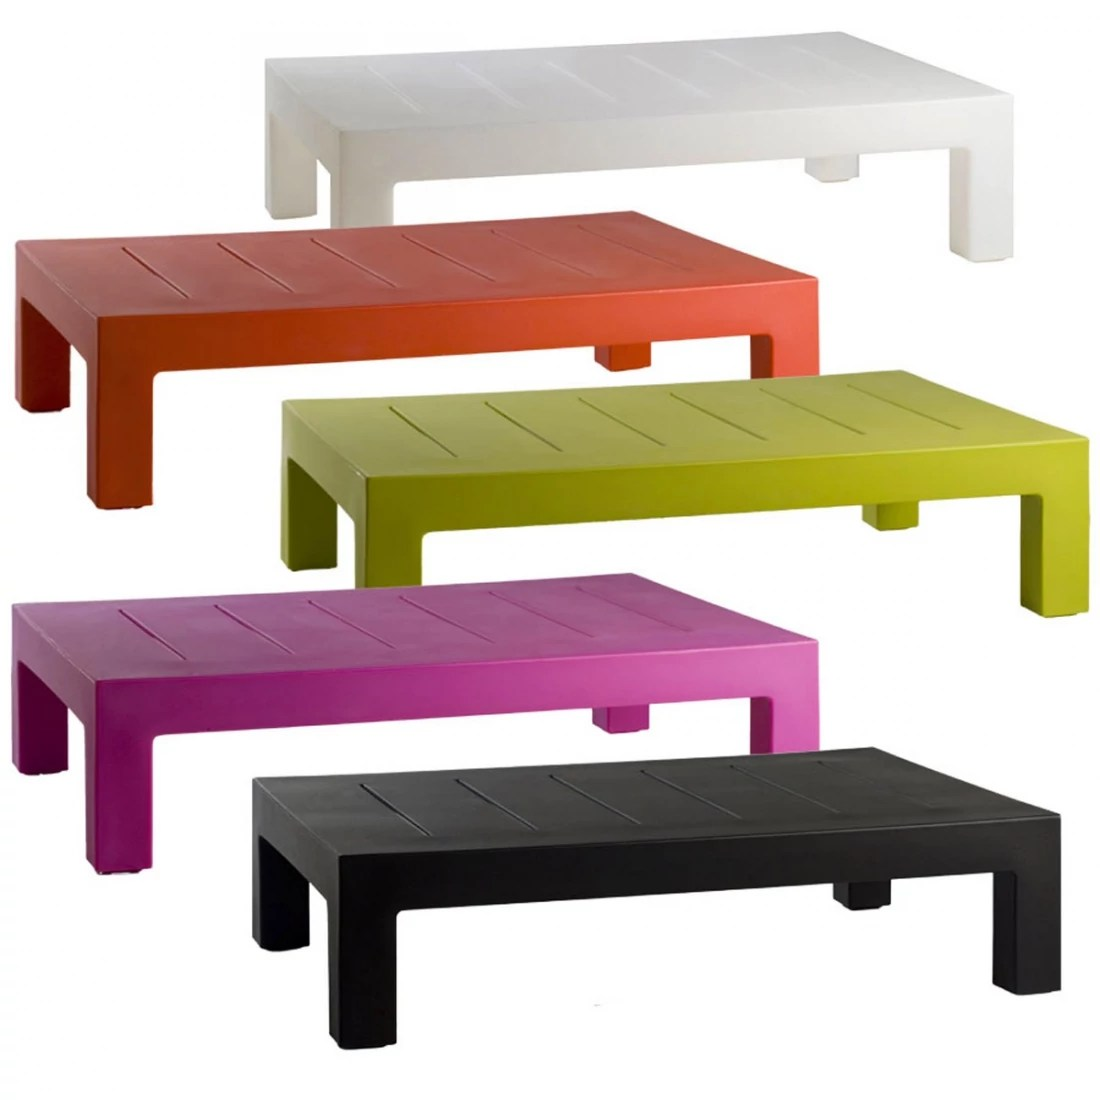 Table Basse Jardin Table Basse Design Dextérieur Jut Par Vondom